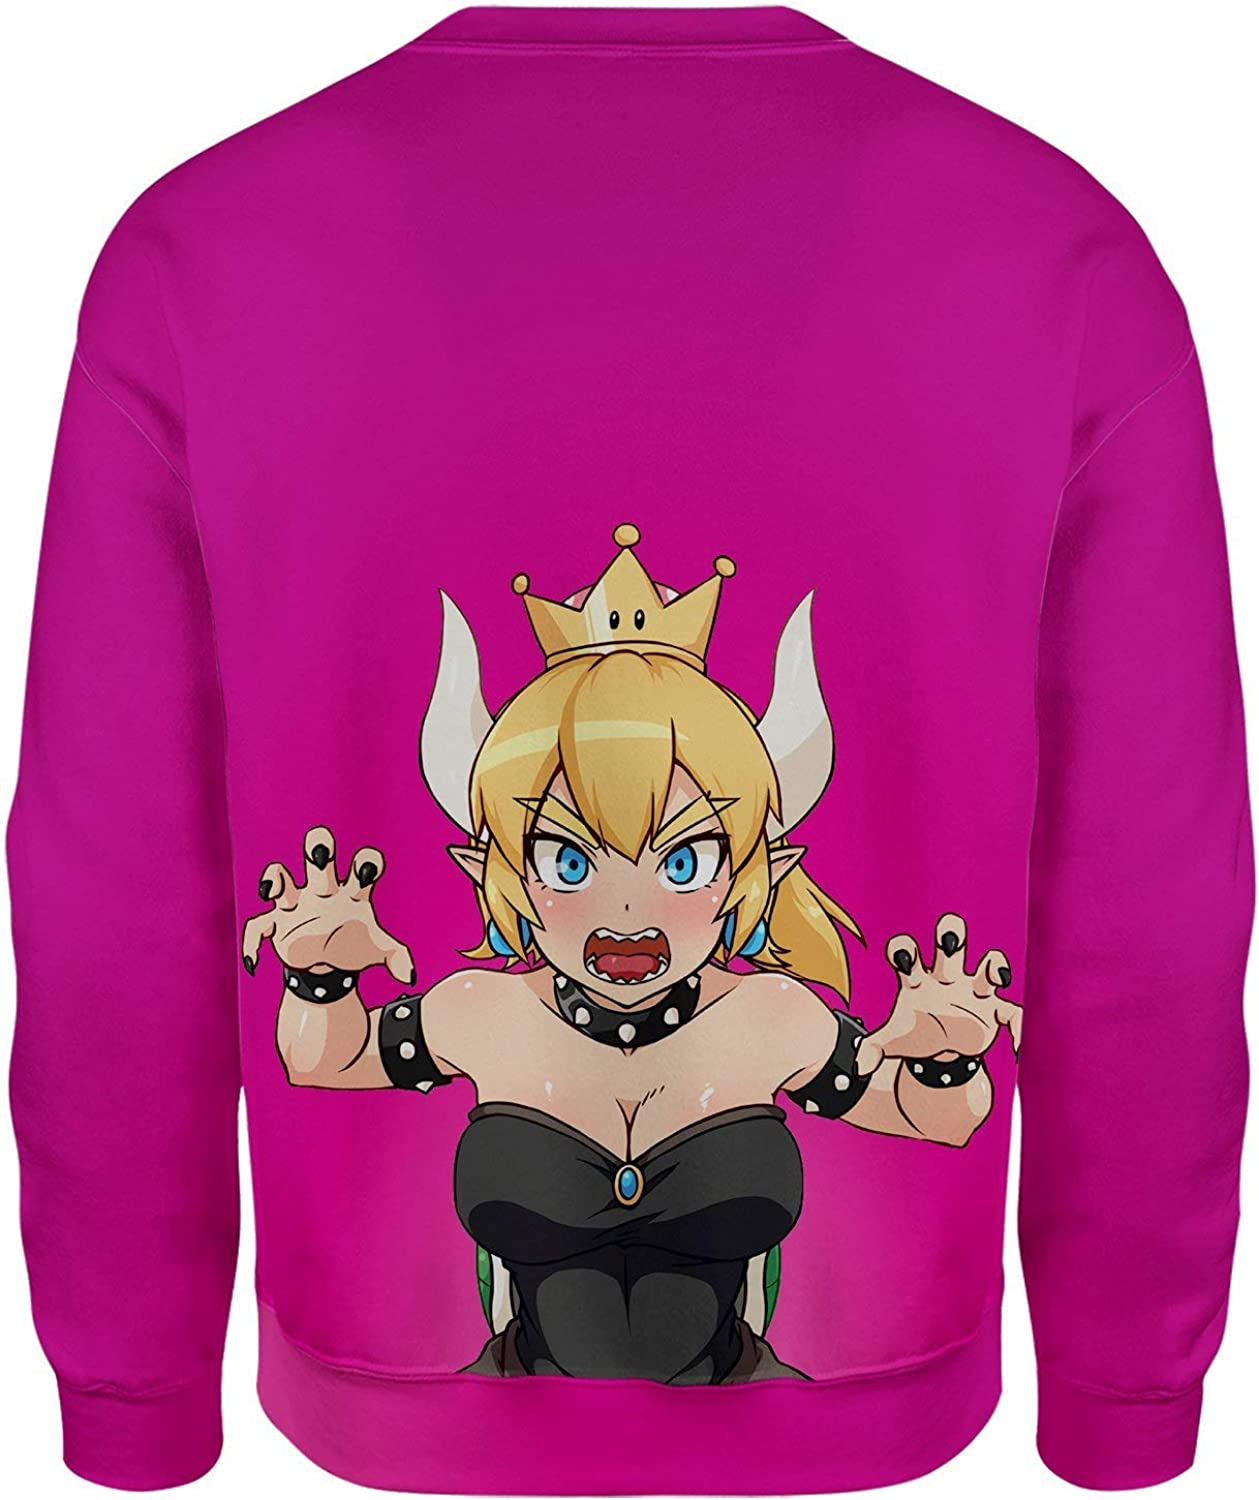 All Over Shirts Bowsette Pink Sweatshirt